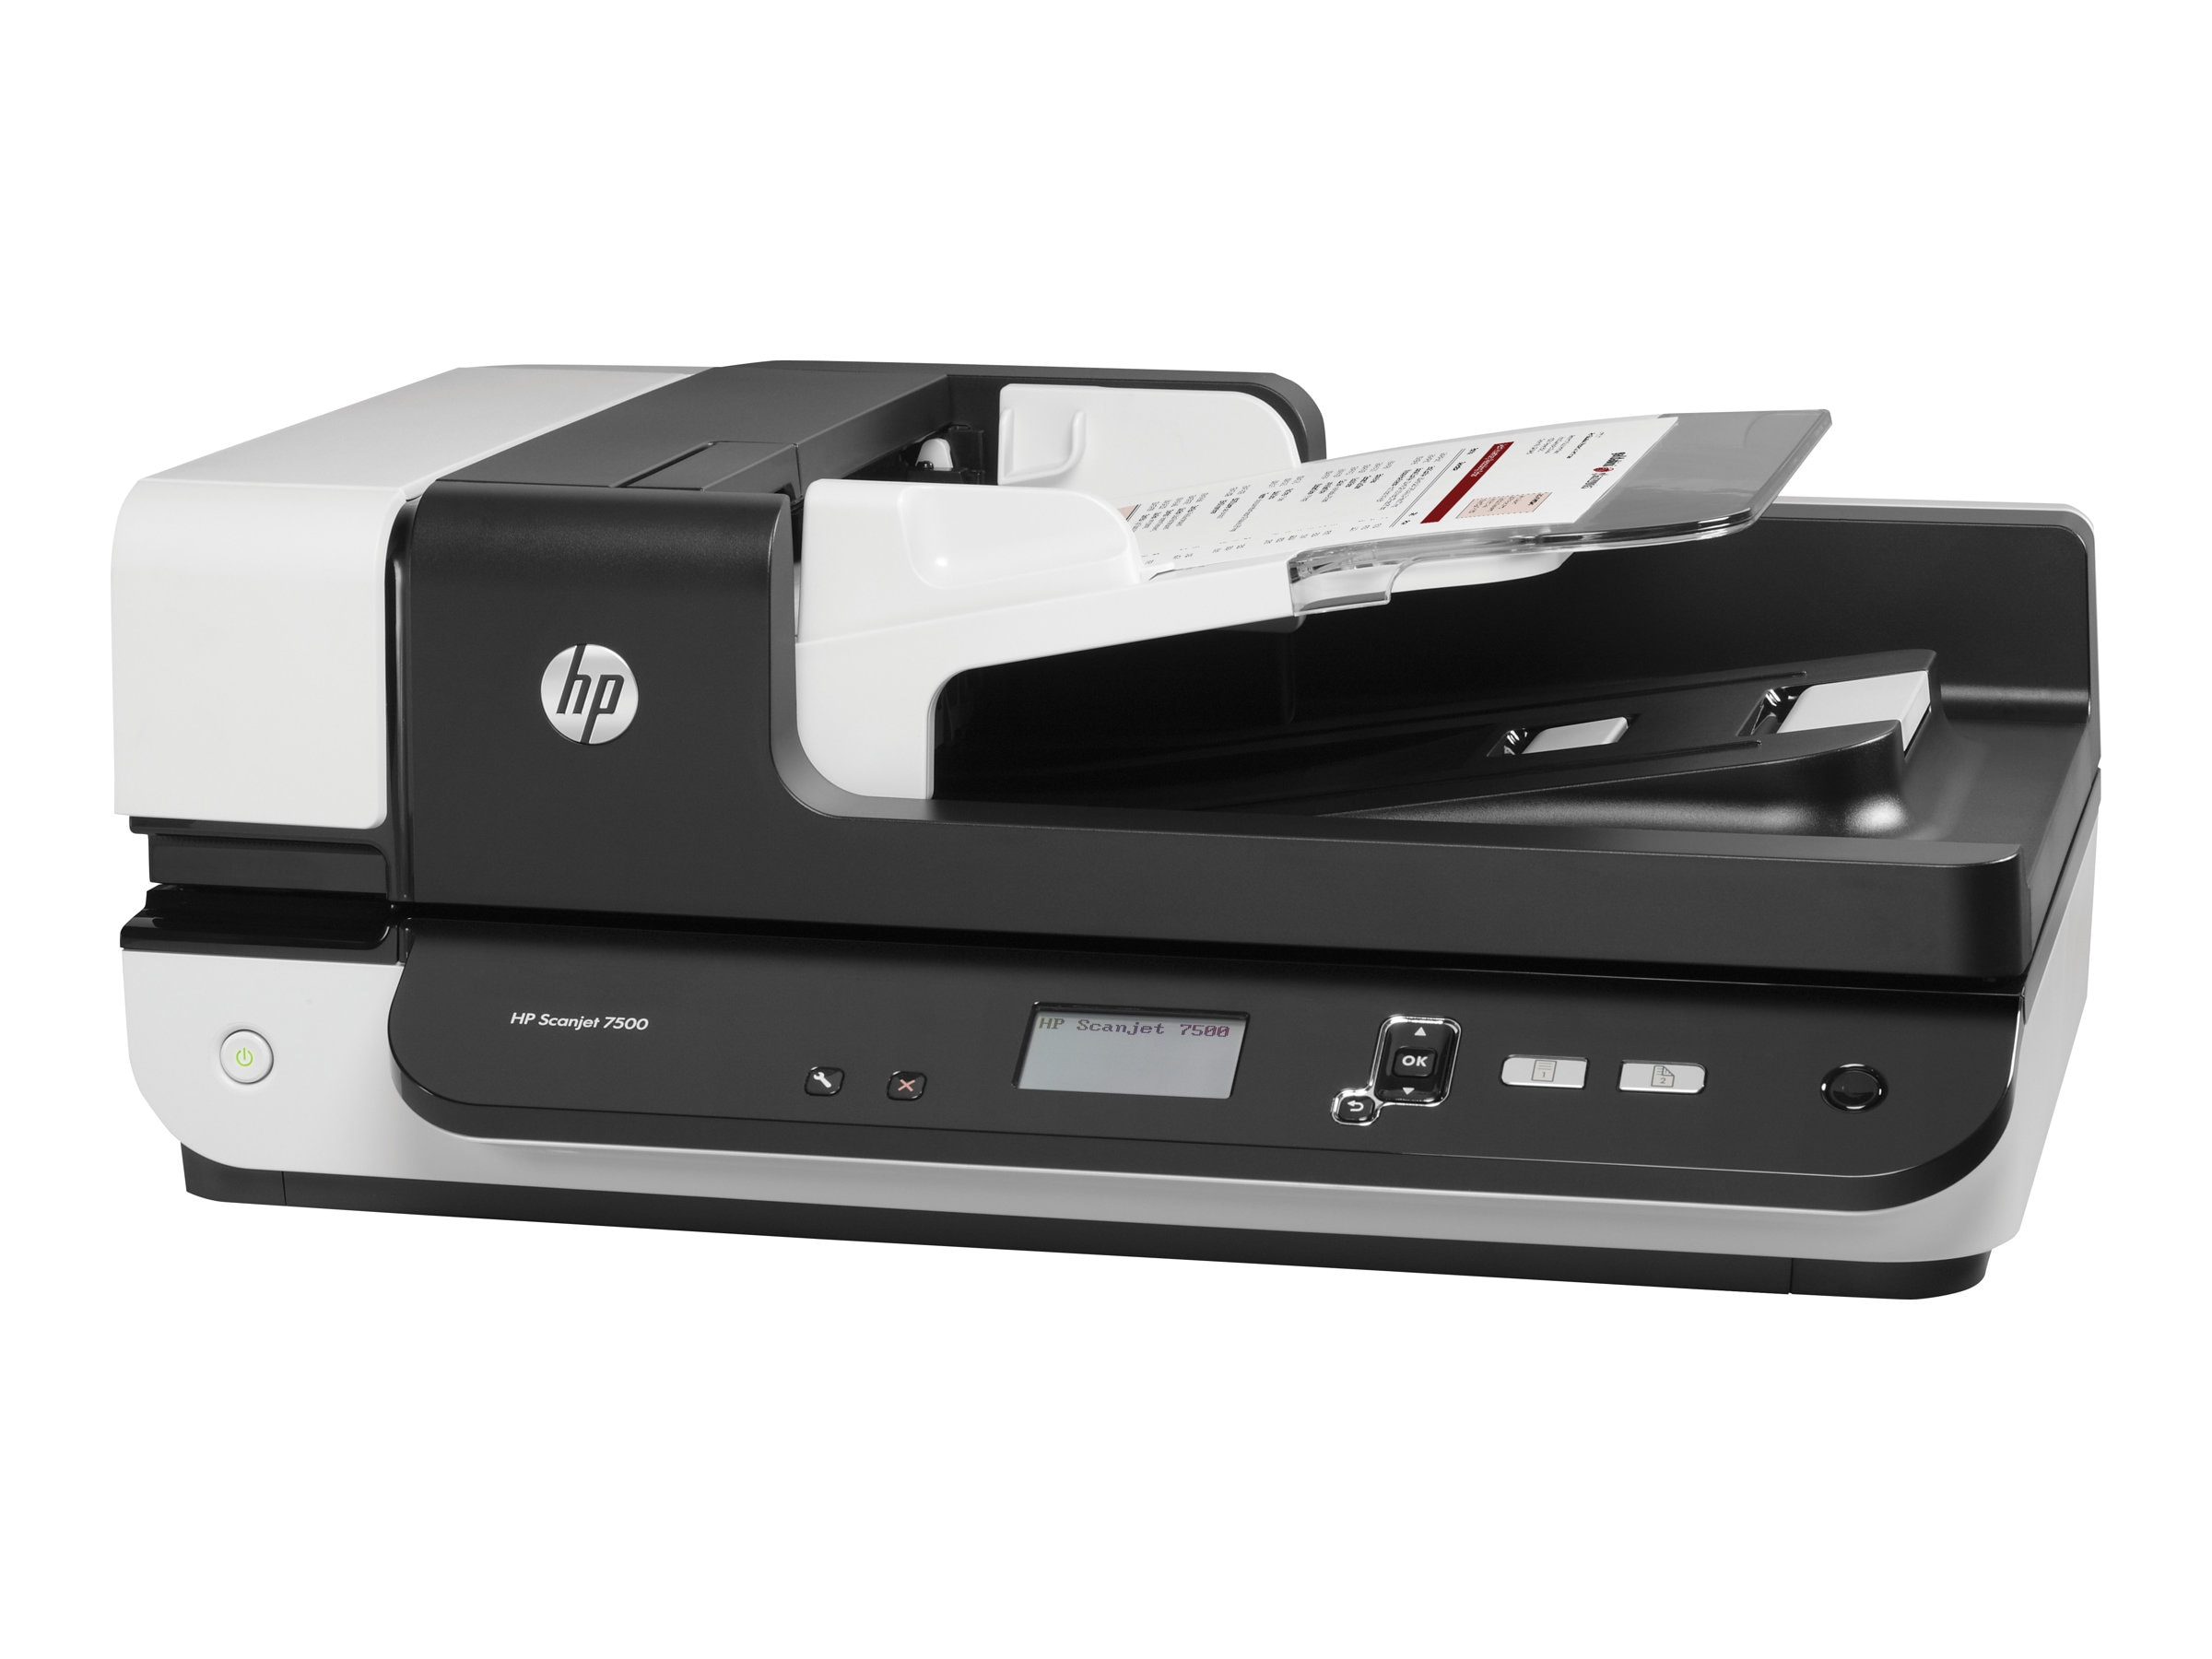 HP ScanJet Enterprise Flow 7500 ($1,349 - 200 Instant Rebate = $1,149 Expires May 31, 2016)